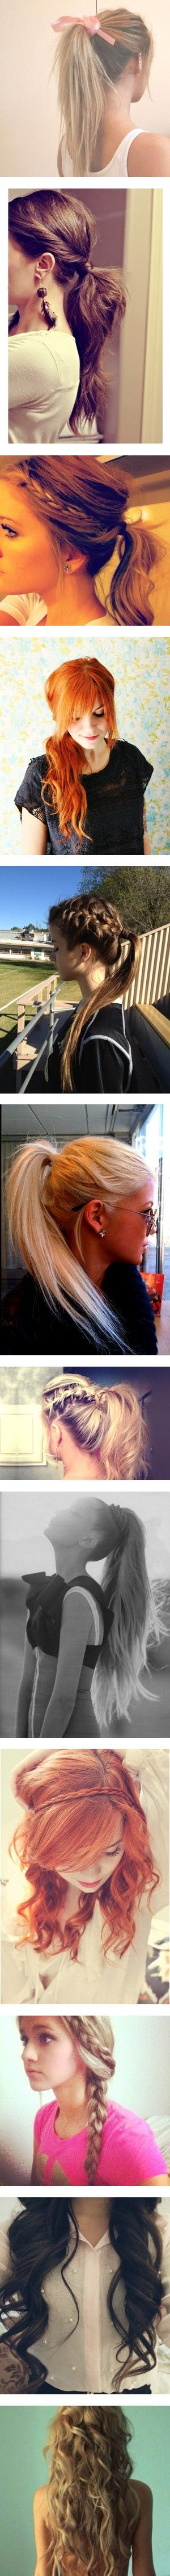 cute hair ideas! This is why in growing my hair out!